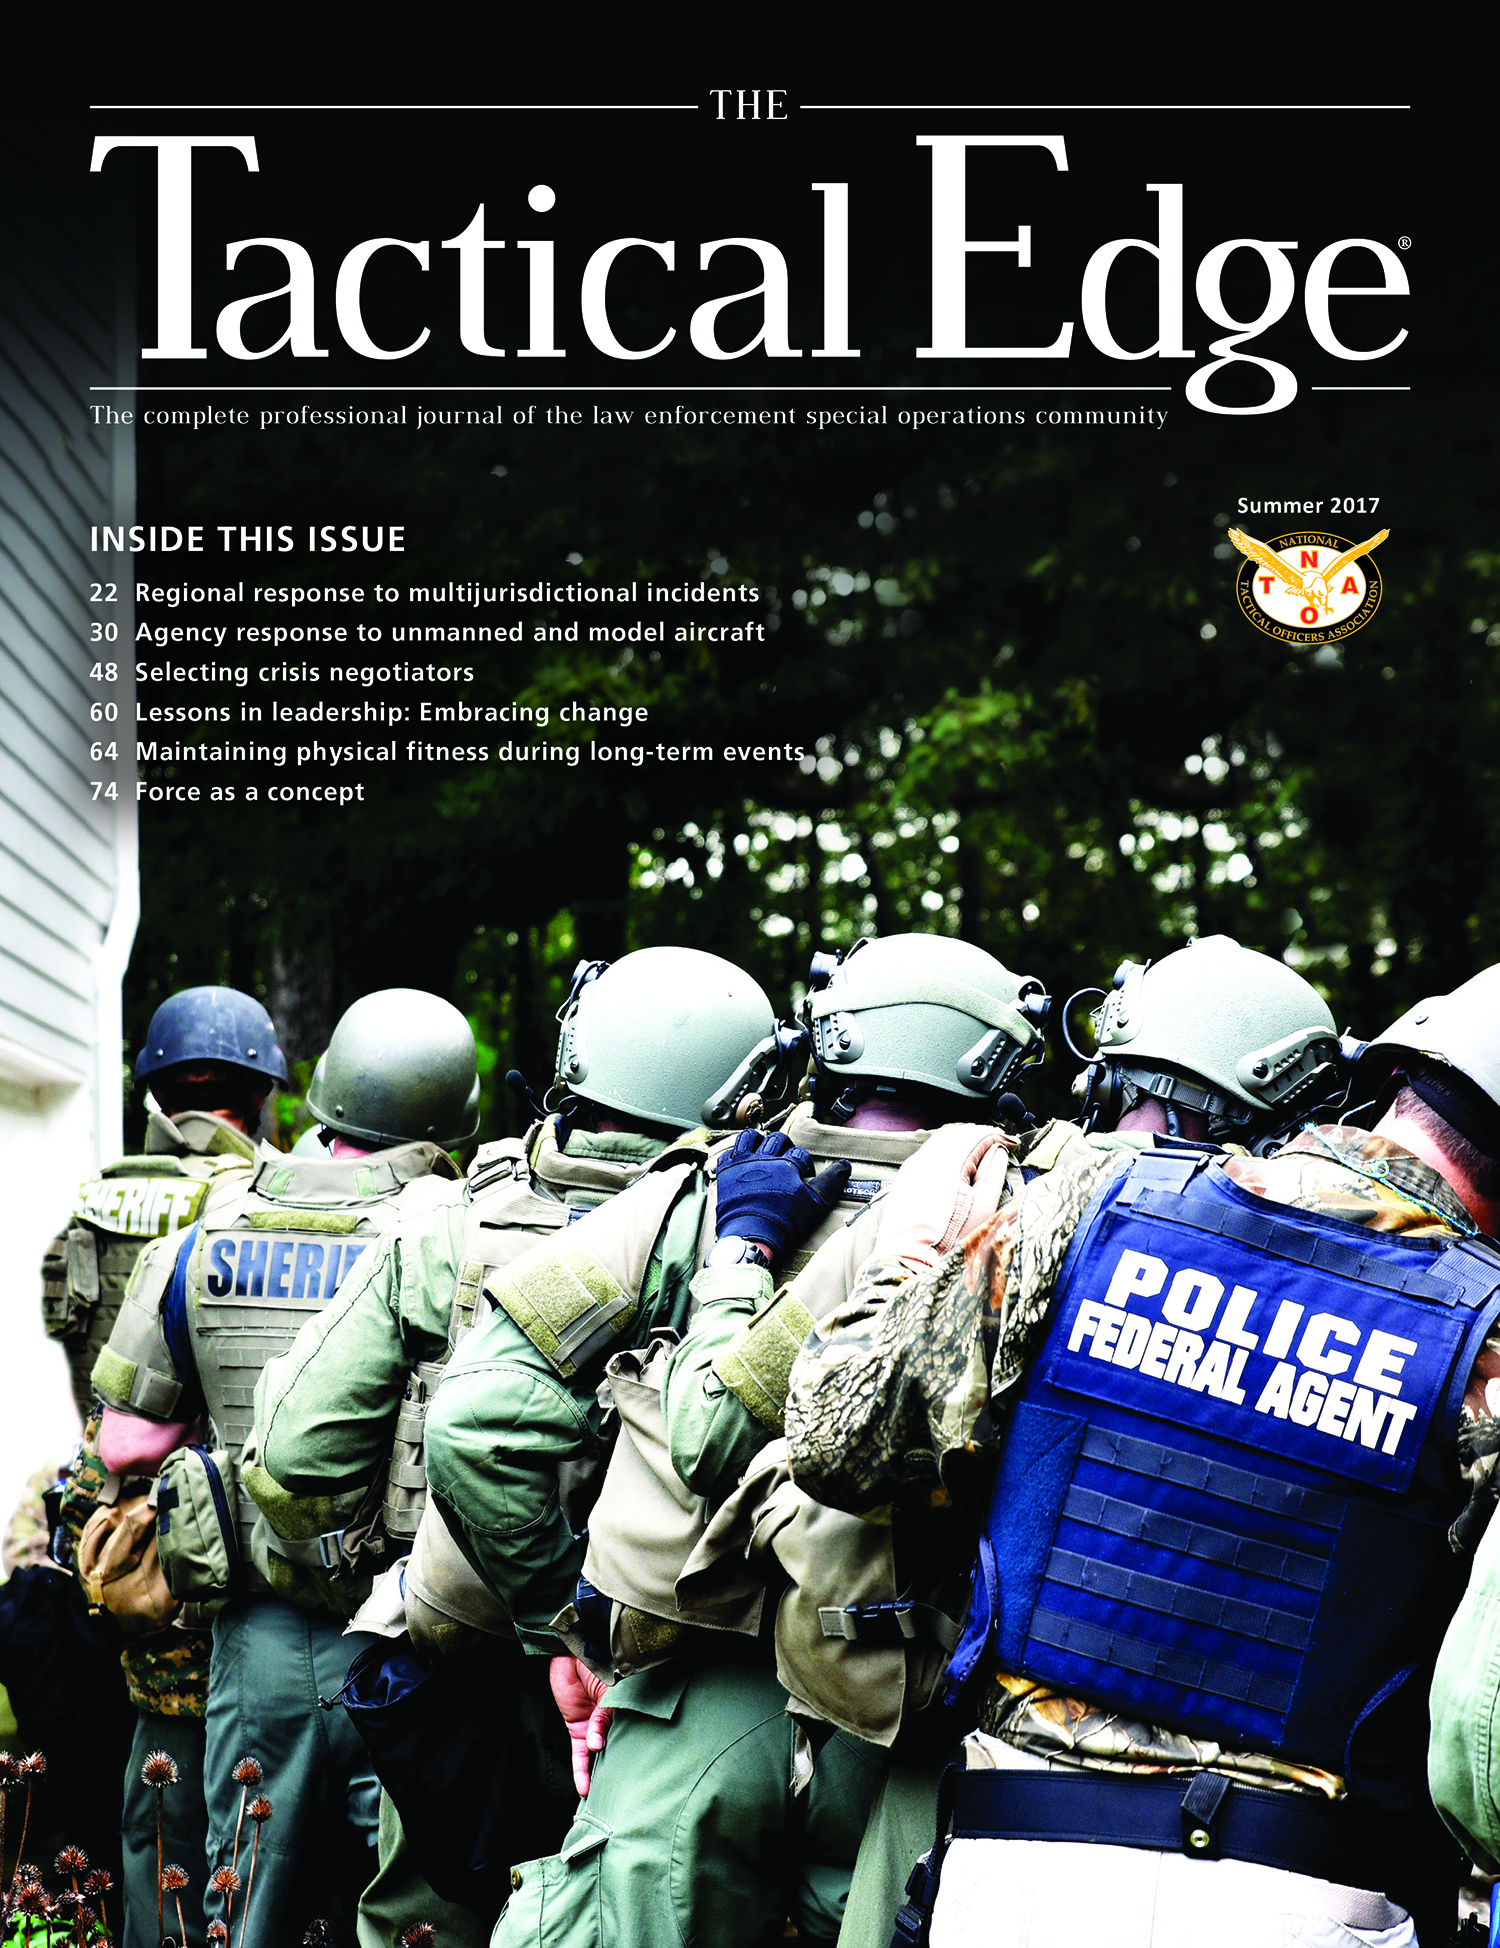 National Tactical Officers Association (NTOA) Releases the Summer Edition of The Tactical Edge